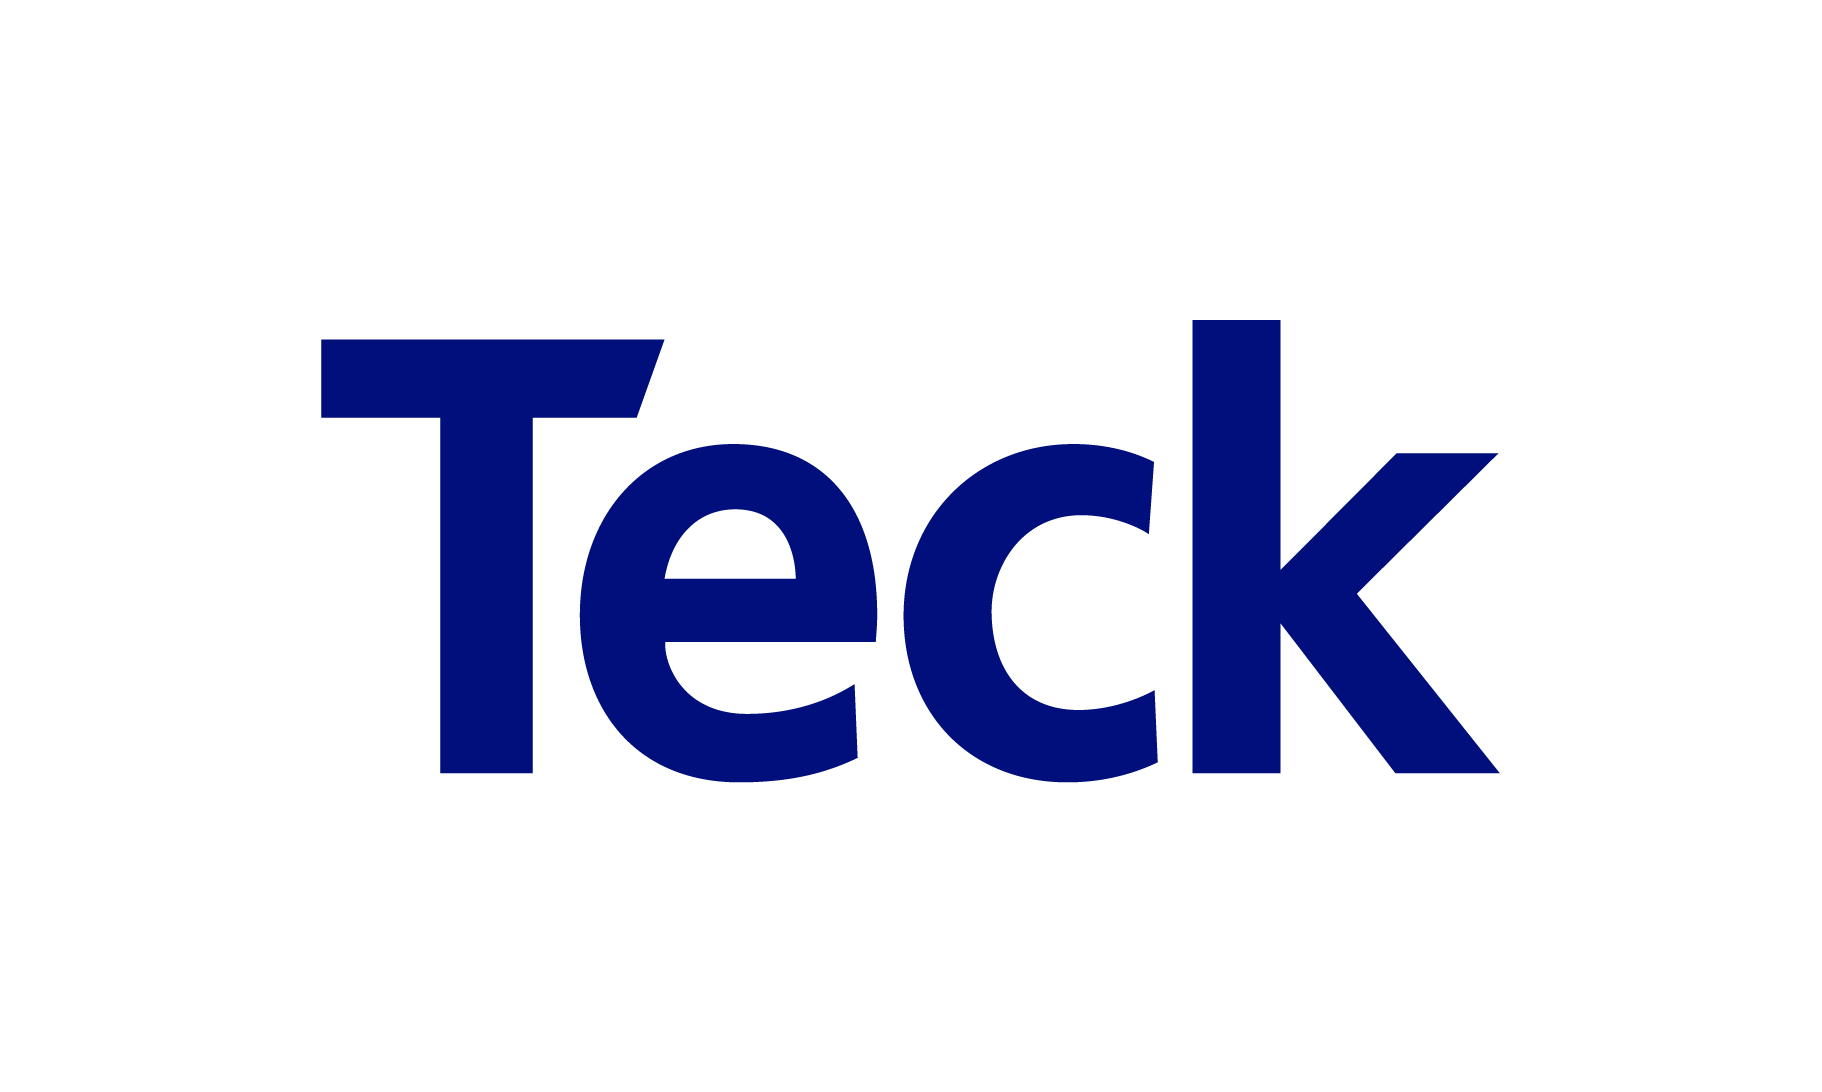 Teck Named to Forbes World's Top Employers List